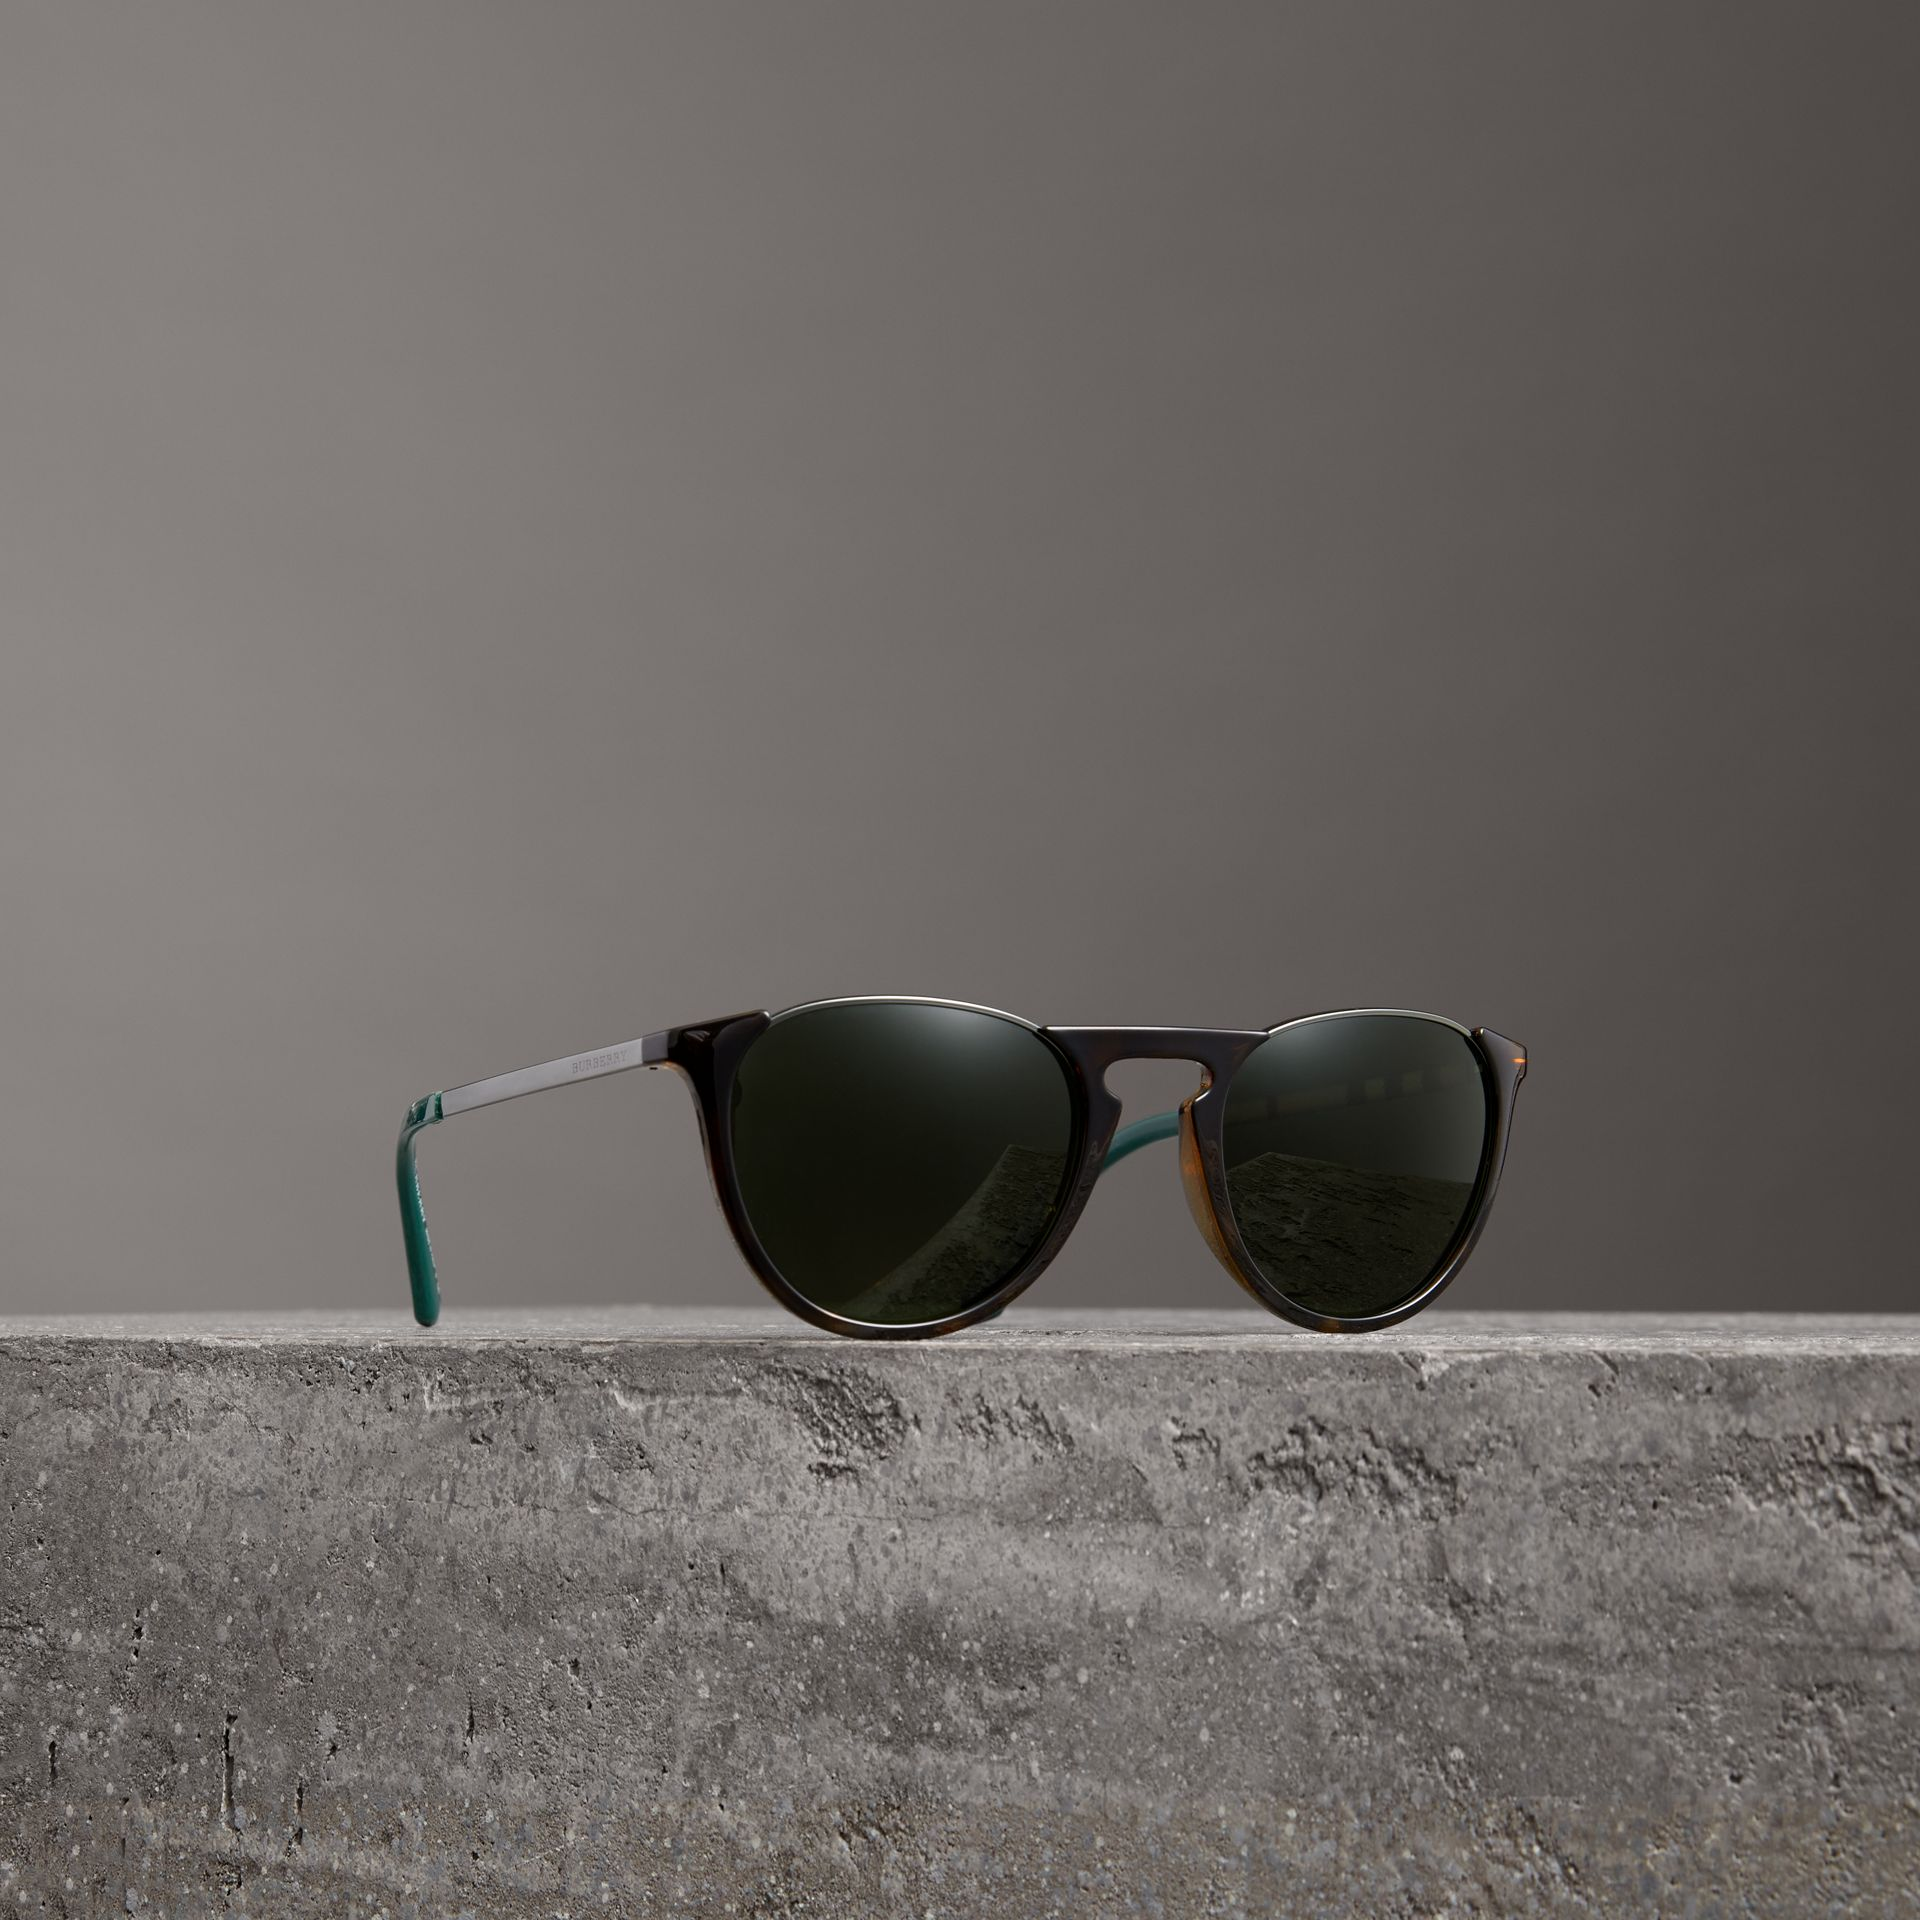 Keyhole Pilot Round Frame Sunglasses in Tortoise Shell - Men | Burberry United Kingdom - gallery image 0